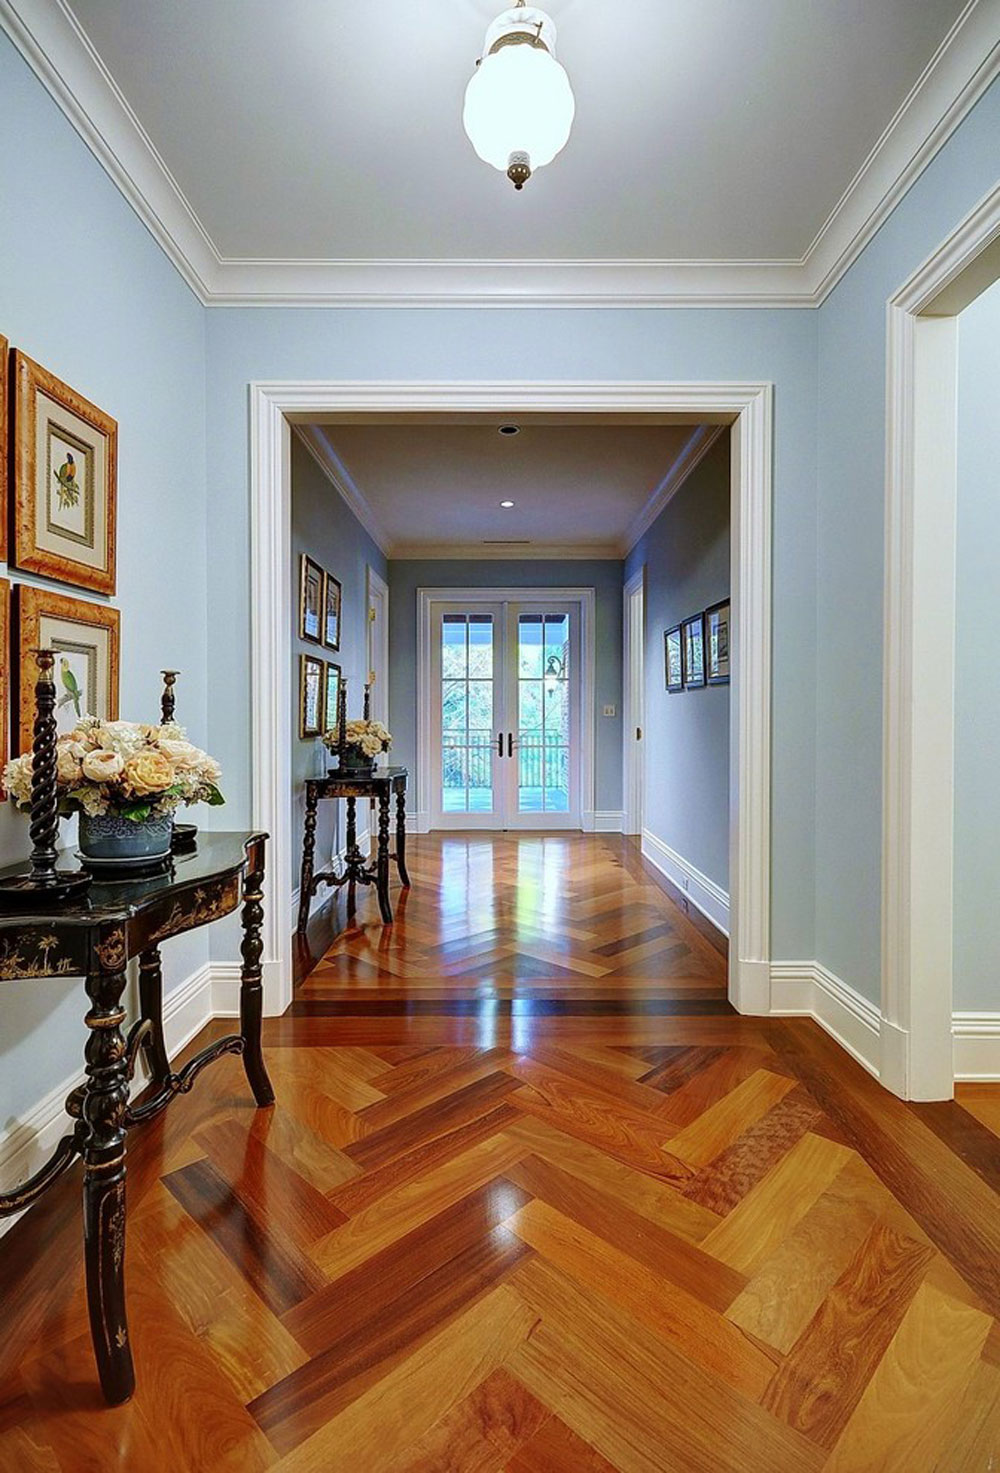 52 Advantages and Disadvantages of Hardwood Floors